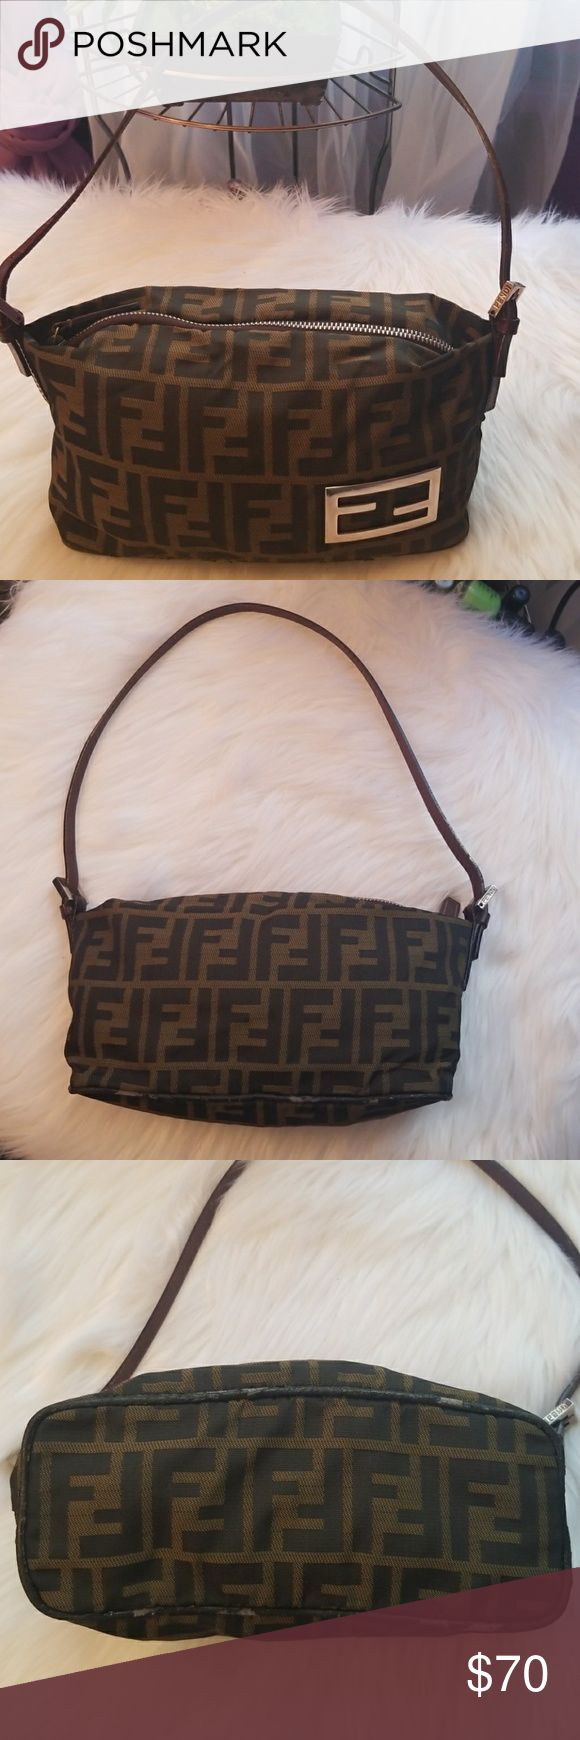 💕Fendi Baguette Canvas  Bag💋Aunthenic ✔ Gorgeous Bag used/ still has tons of life with in....flaws are peeling along side of bottom of bag that are not noticeable while wearing the strap has a little wear see photo's! Fendi Hardware in Excellent condtion /No stains  Great Bag just need a little repair... dimensions are 10 across 5 down.. Price reflects Flaws✔ Fendi Bags Shoulder Bags